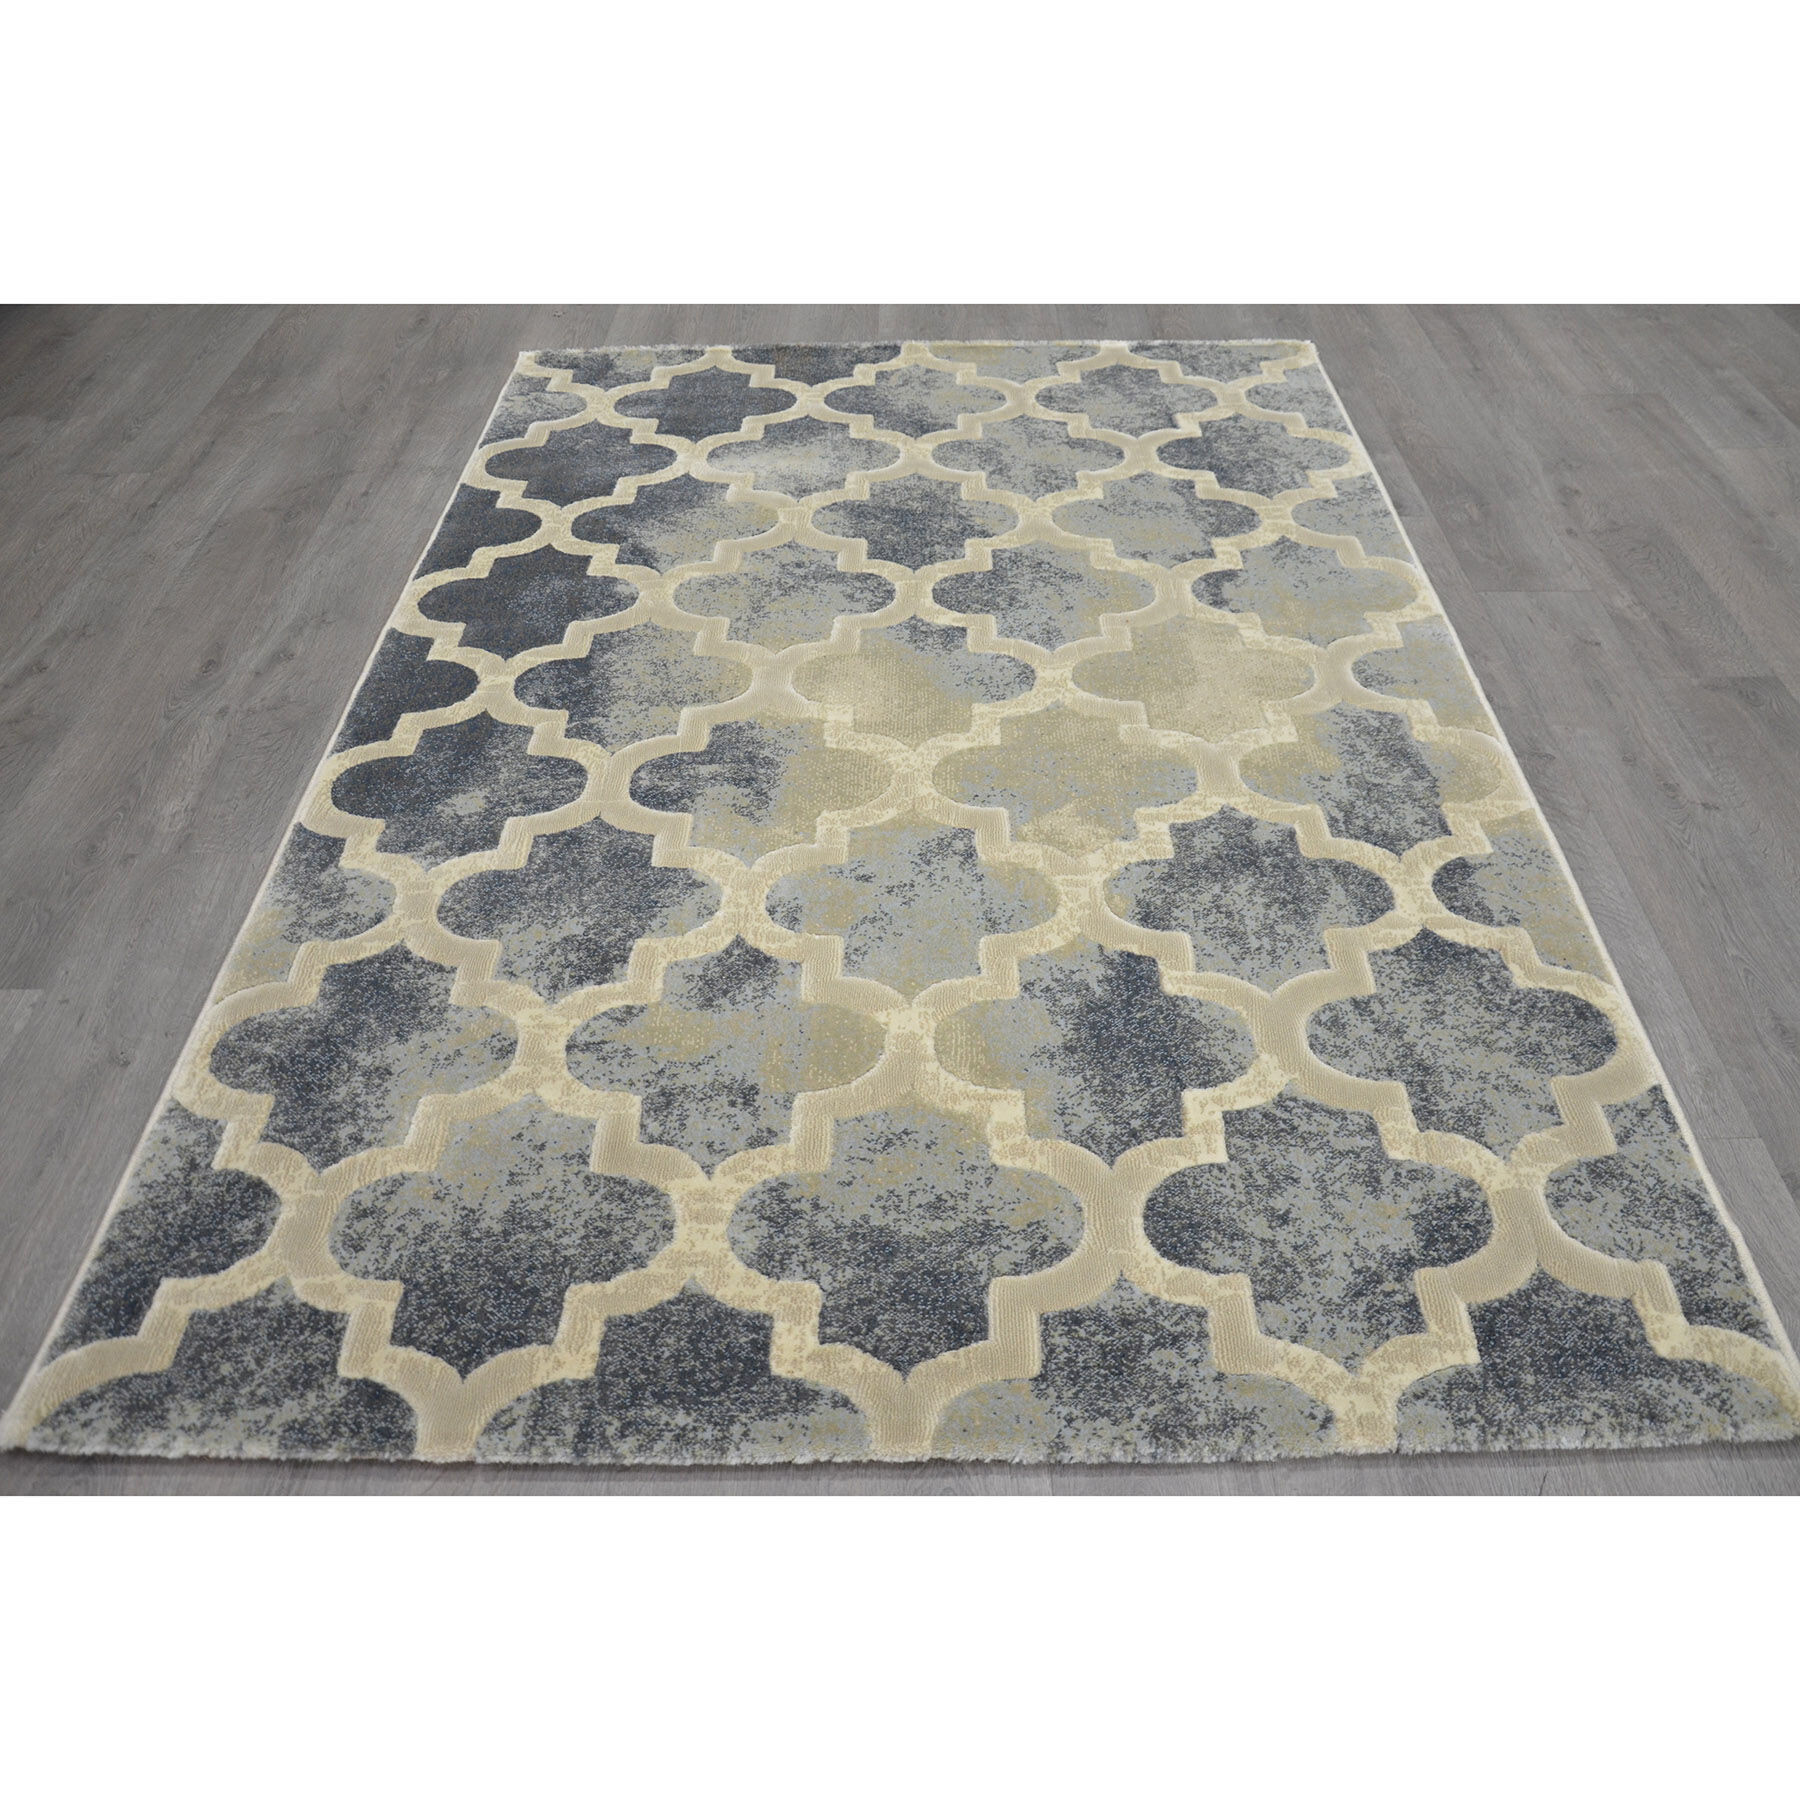 A199 Aqua And Cream Trellis Newbury Rug 5 X 7 Ft At Home